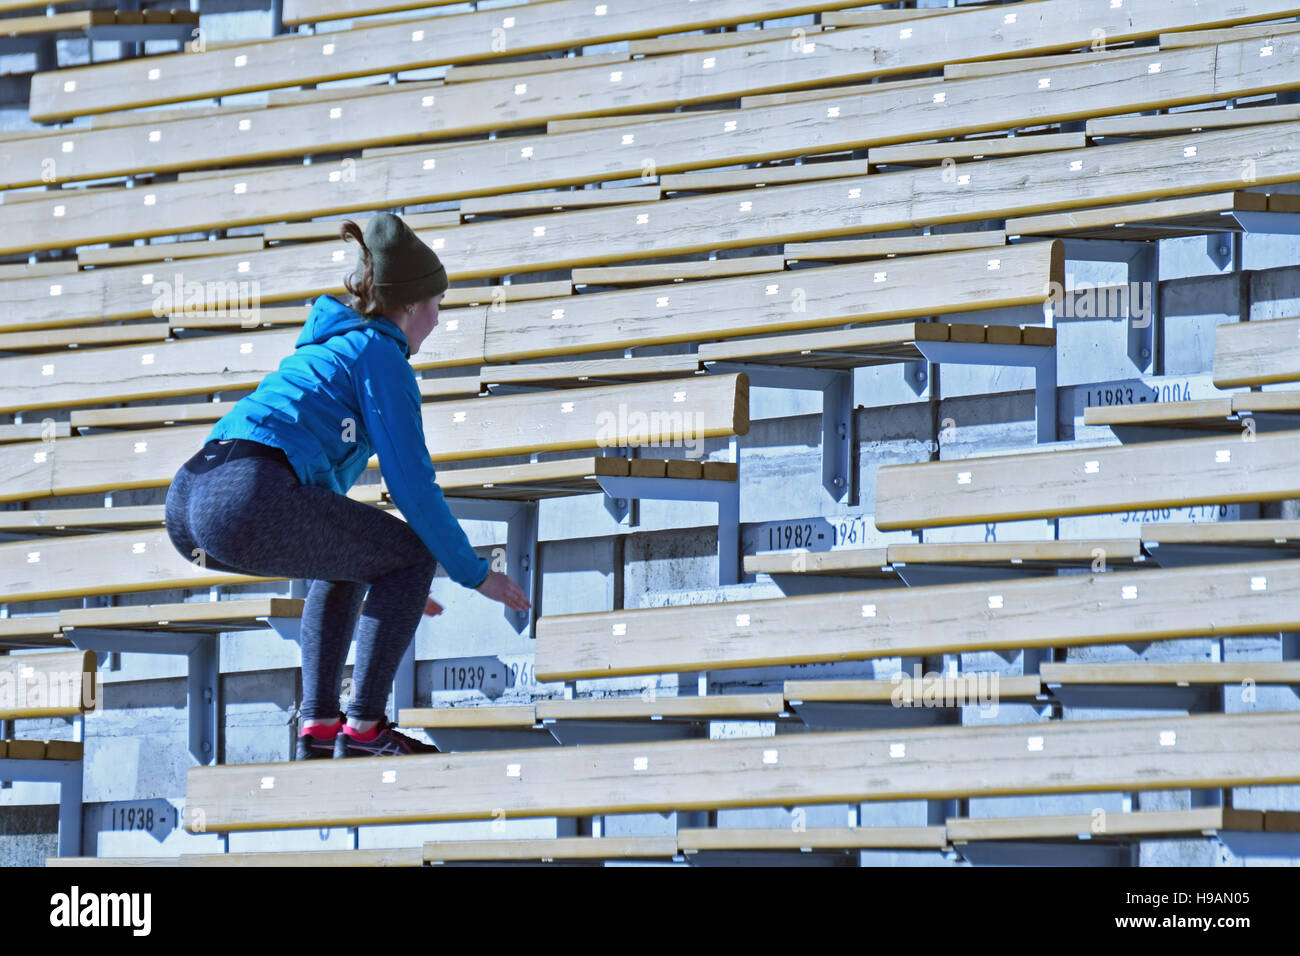 Jumping in stairs. Young woman training. - Stock Image